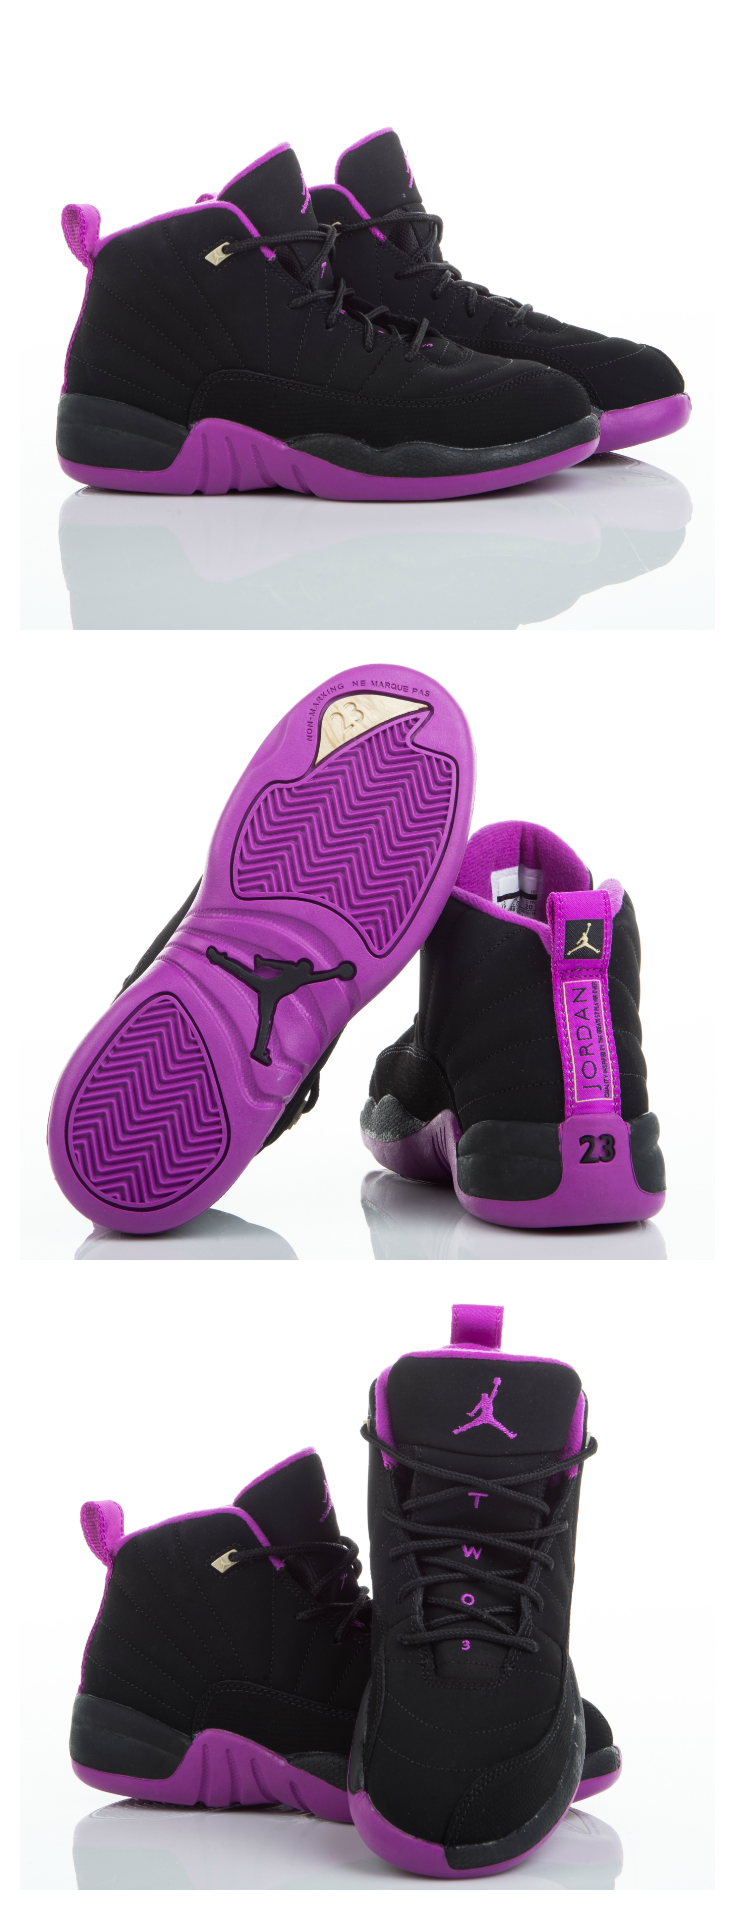 best service 0dca5 51030 ... hot offset the summer heat with the cool jordan retro 12 available in  girls sizes.